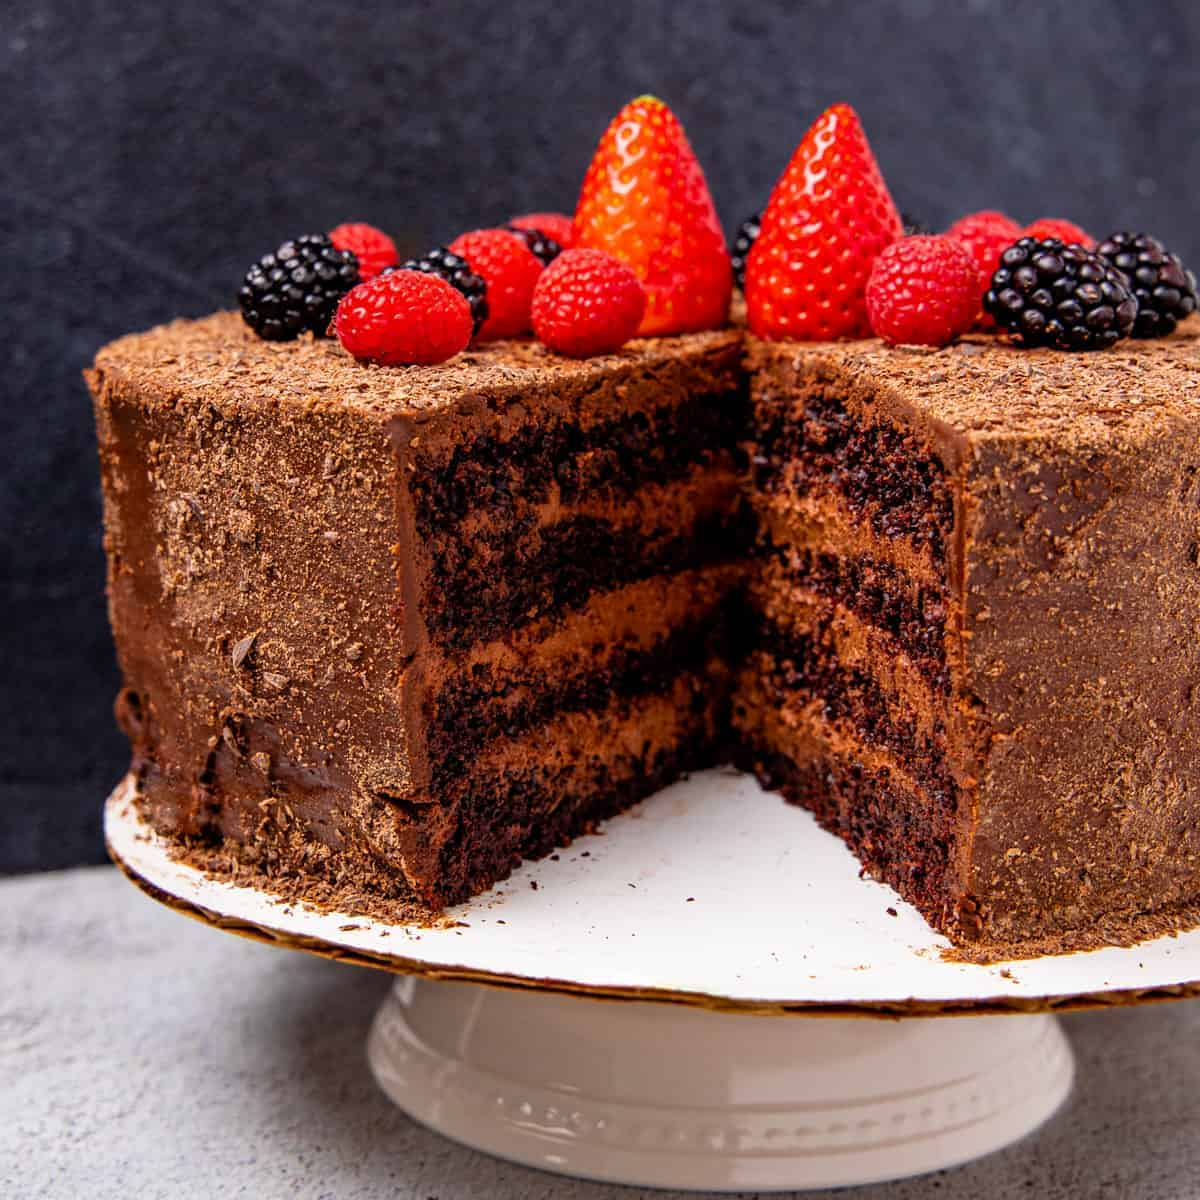 A chocolate mousse cake shown layers of dark chocolate cake, chocolate mousse, and a chocolate ganache topping then garnished with fresh berries.